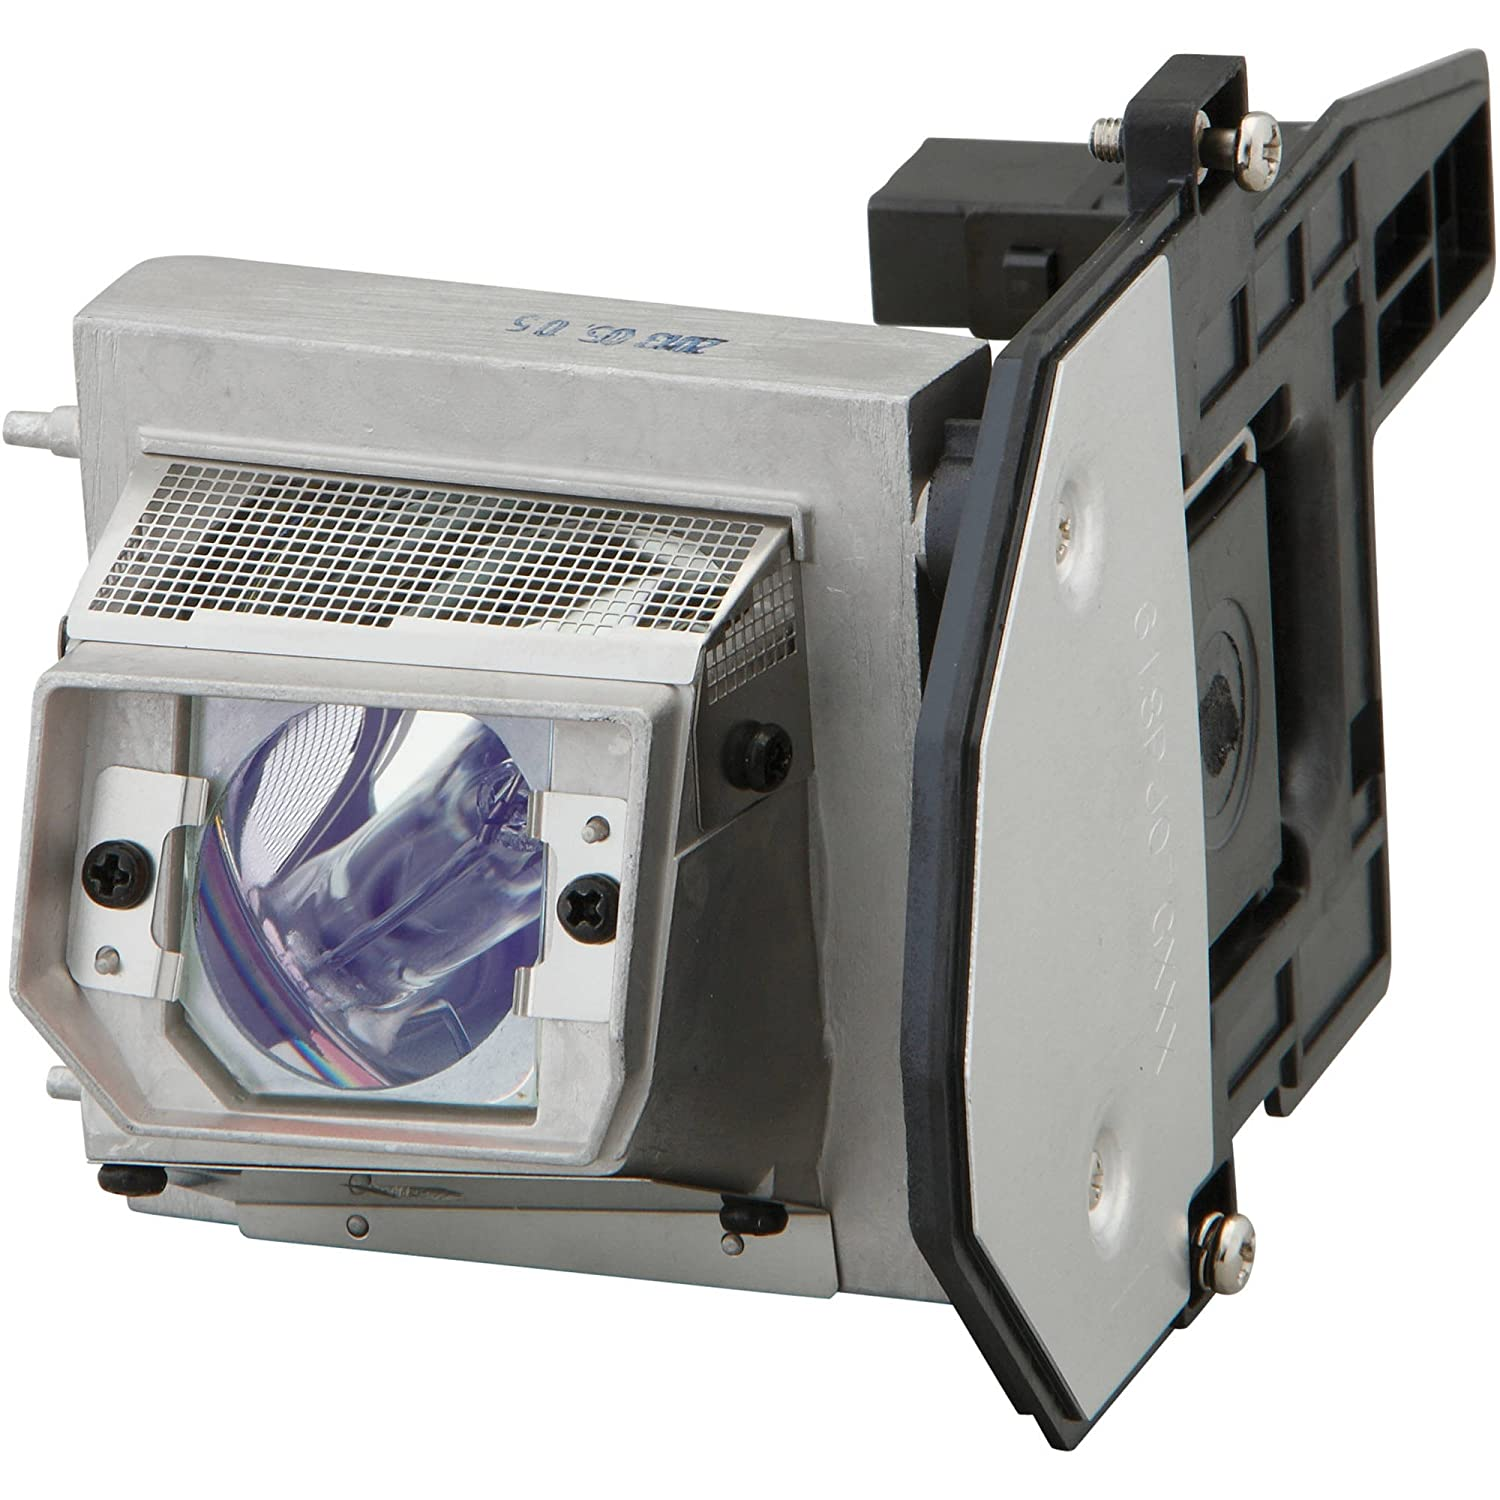 Amazing Lamps et-lal330工場元電球で互換性ハウジングfor Panasonic Projectors   B073R1TPF8